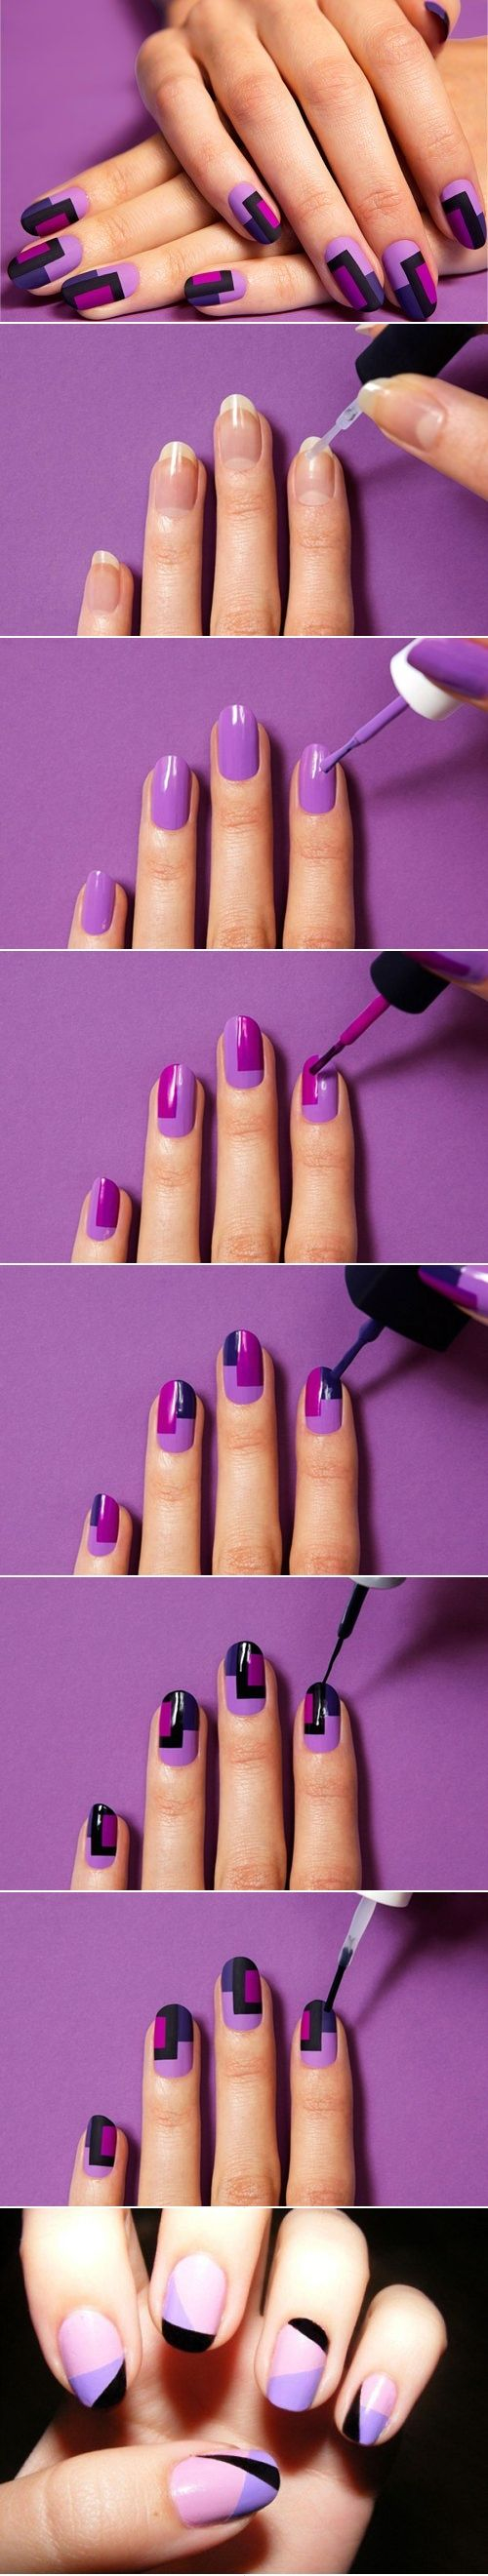 DIY Colorful Fashion Nails Tutorial LIKE Us on Facebook ==> https://www.facebook.com/UsefulDiy